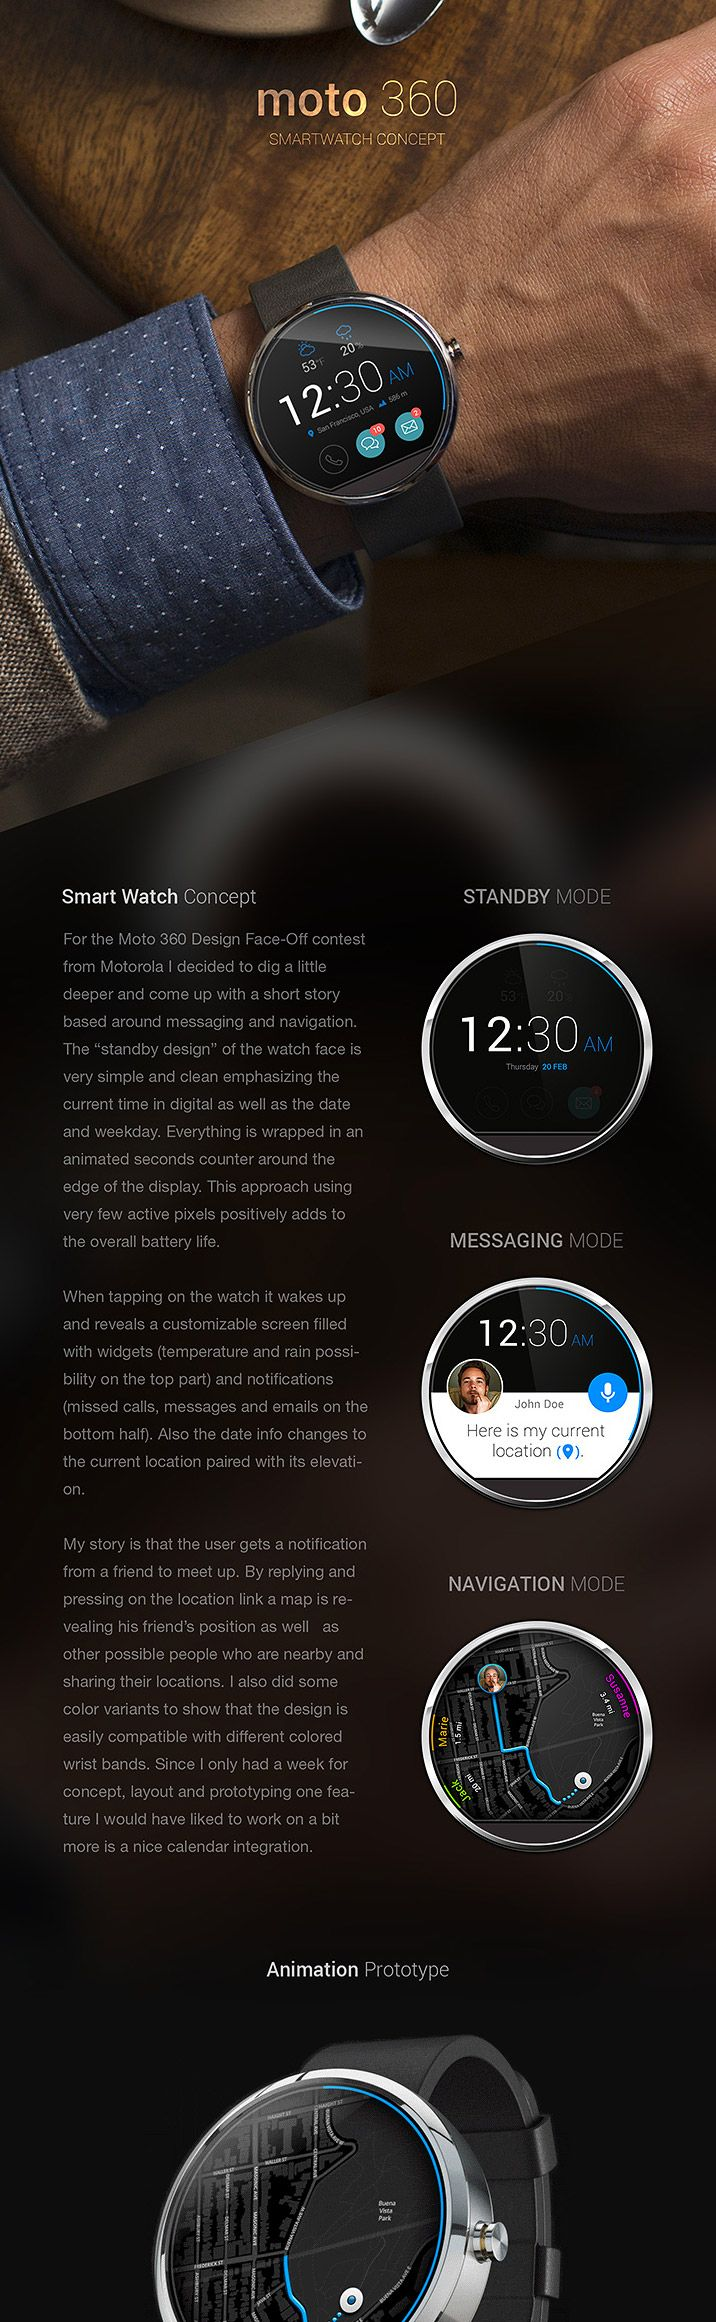 23 Smartwatch UI Designs & Concepts